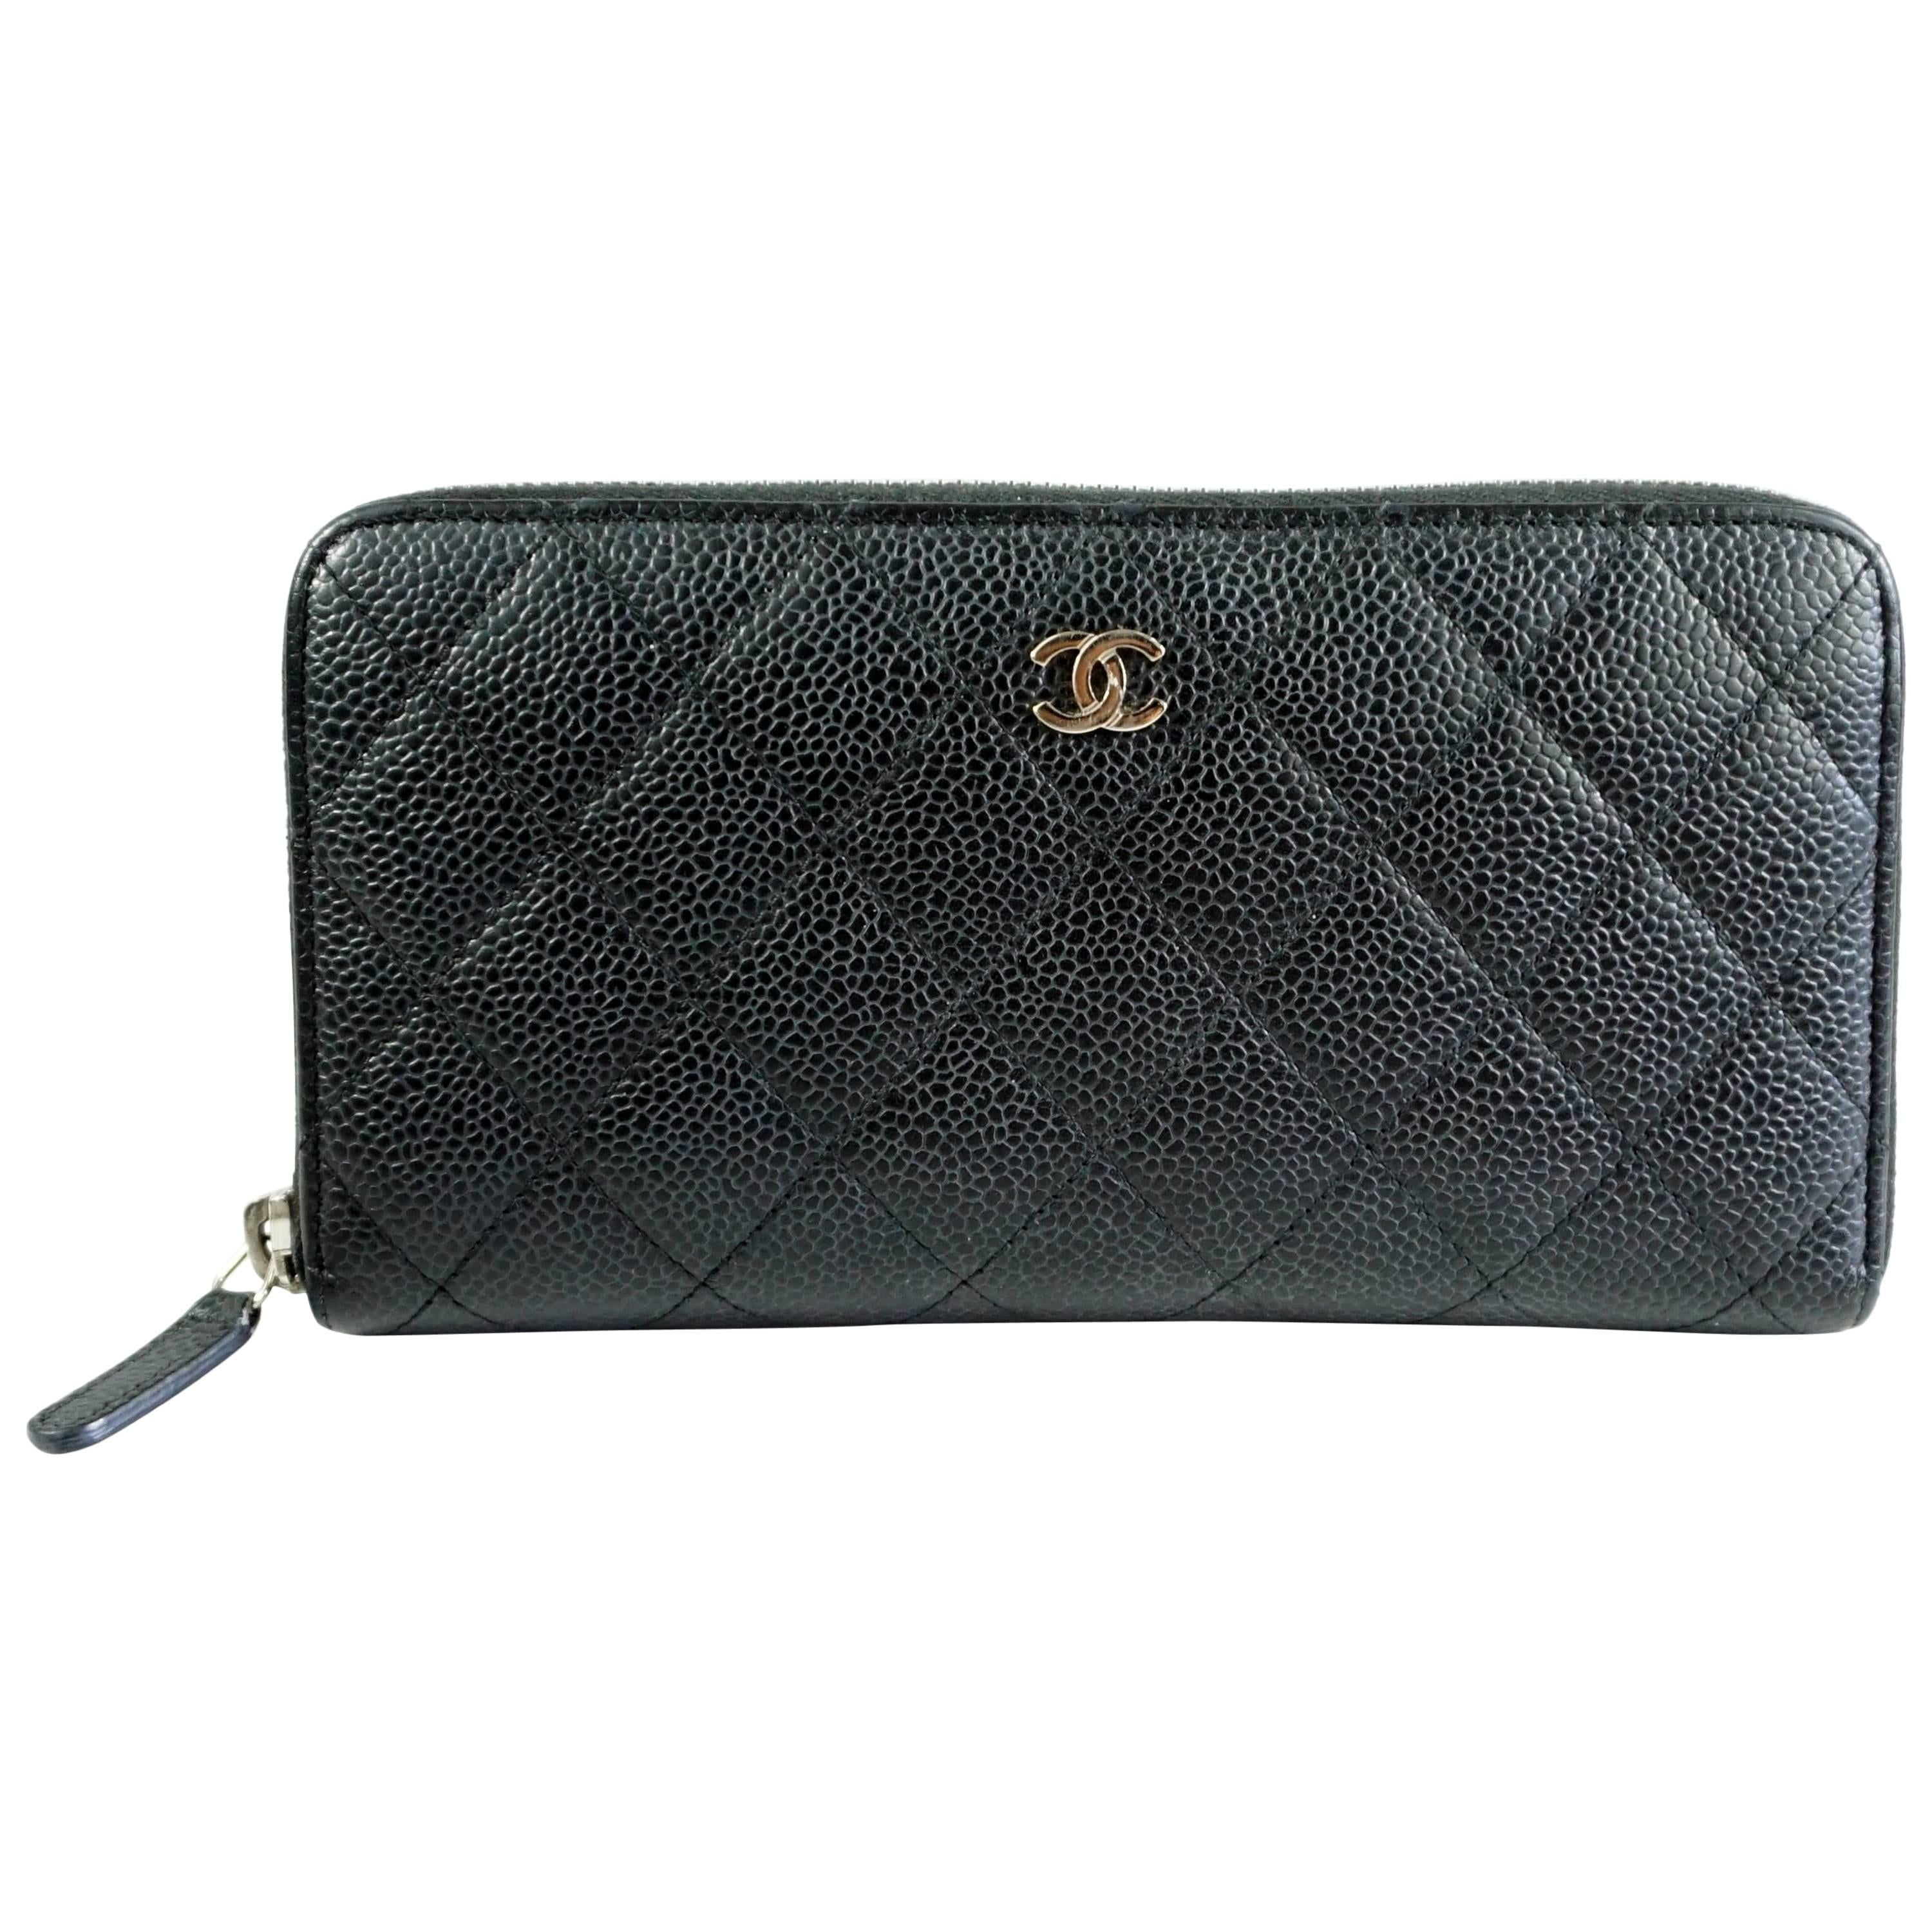 2963dc0ffac1 Chanel Black Caviar Leather Zippy Wallet at 1stdibs